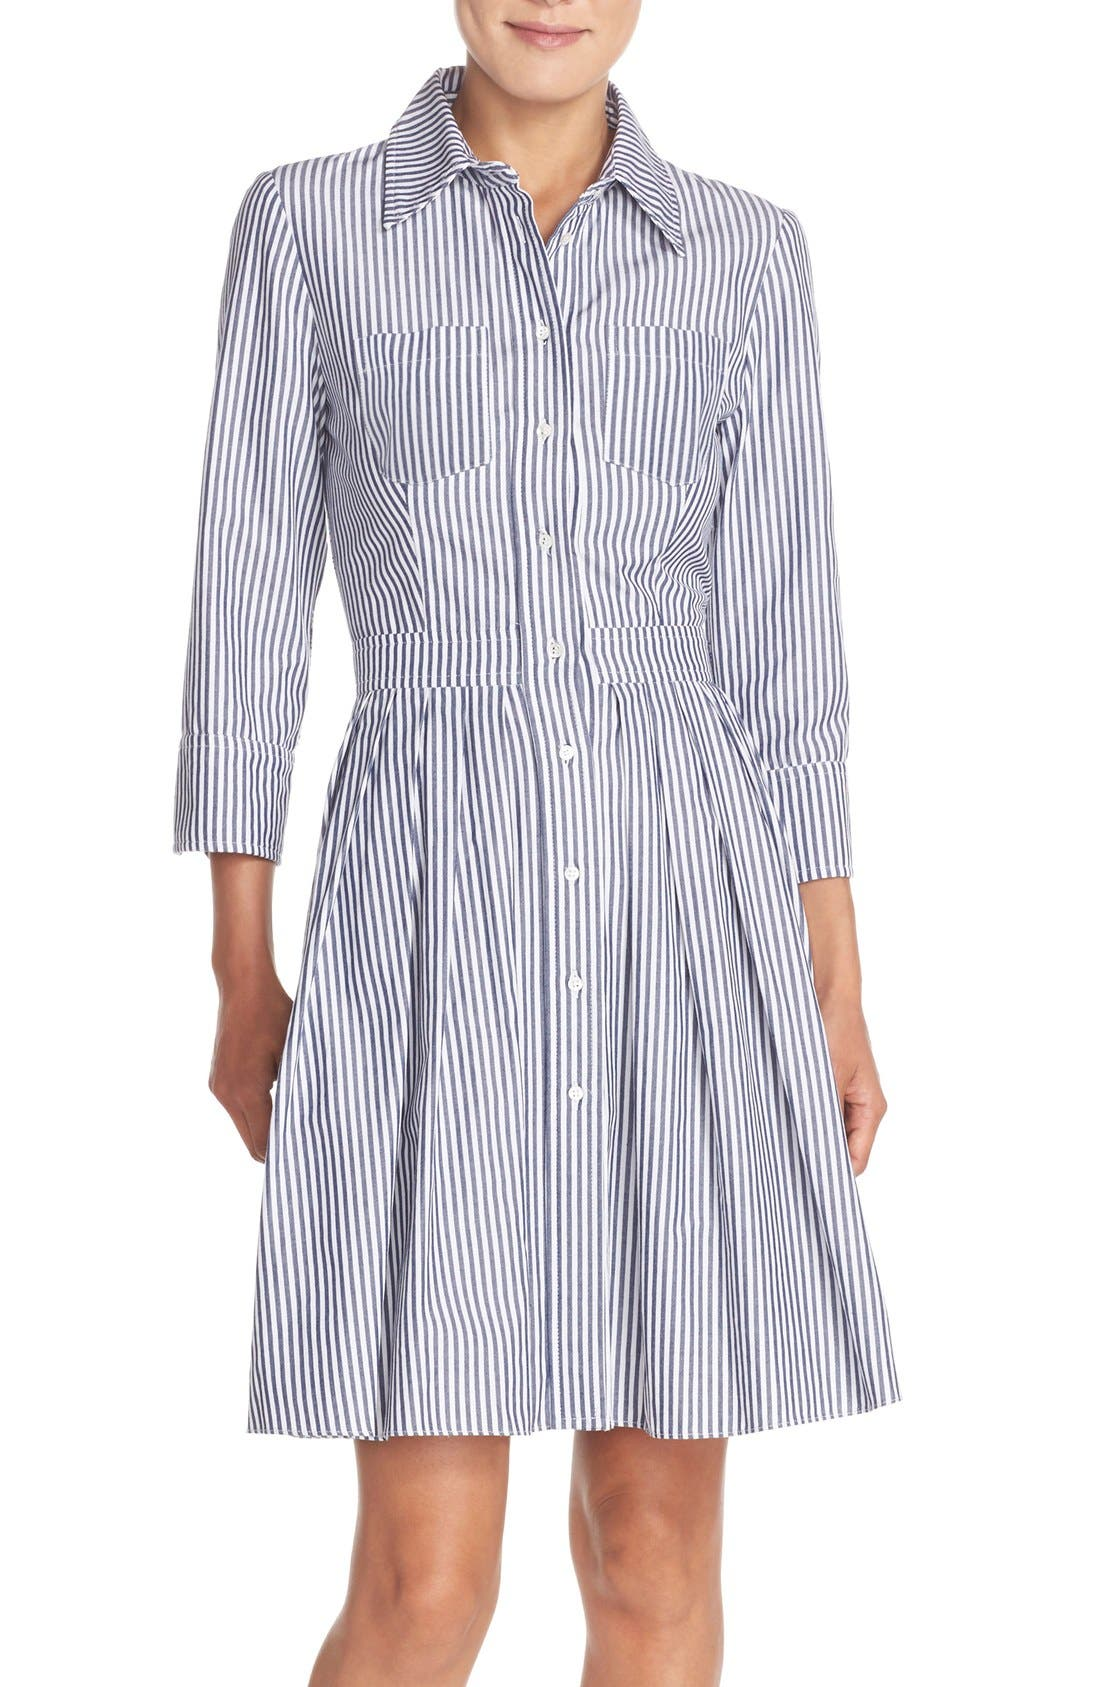 Alternate Image 1 Selected - Eliza J Stripe Cotton Shirtdress (Regular & Petite)